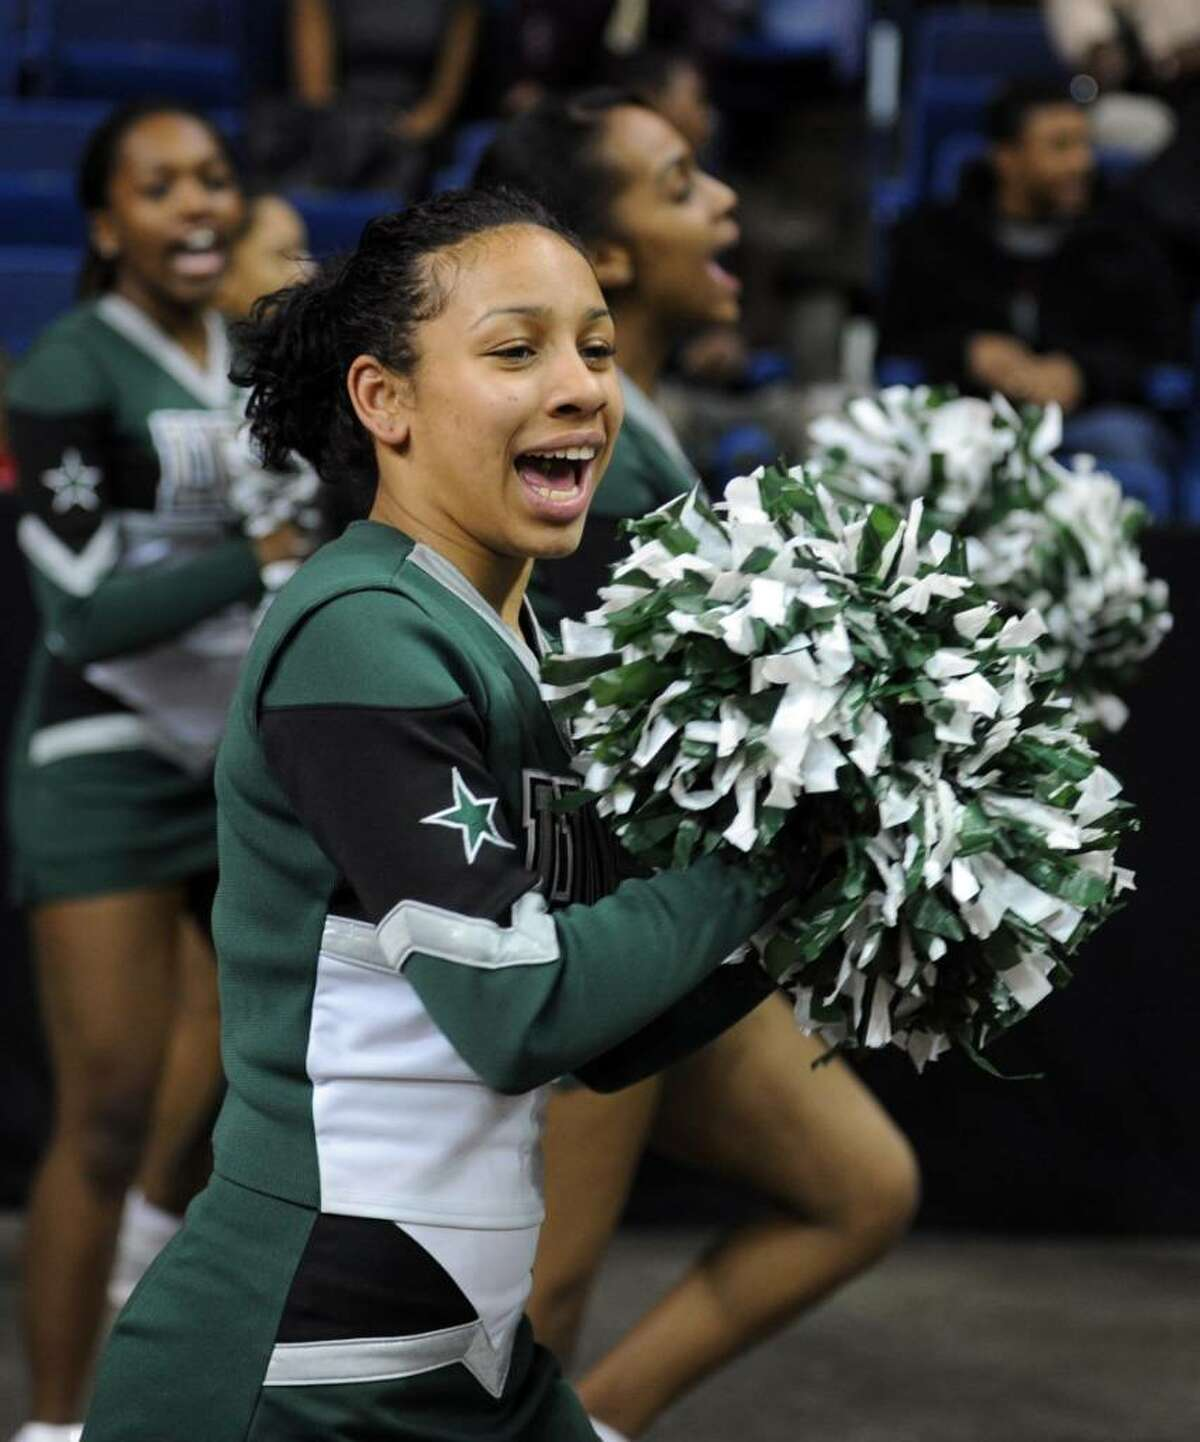 Bassick cheerleaders at Thursday night's Bridgeport Basketball Classic against Trumbull at the Arena at Harbor Yard.